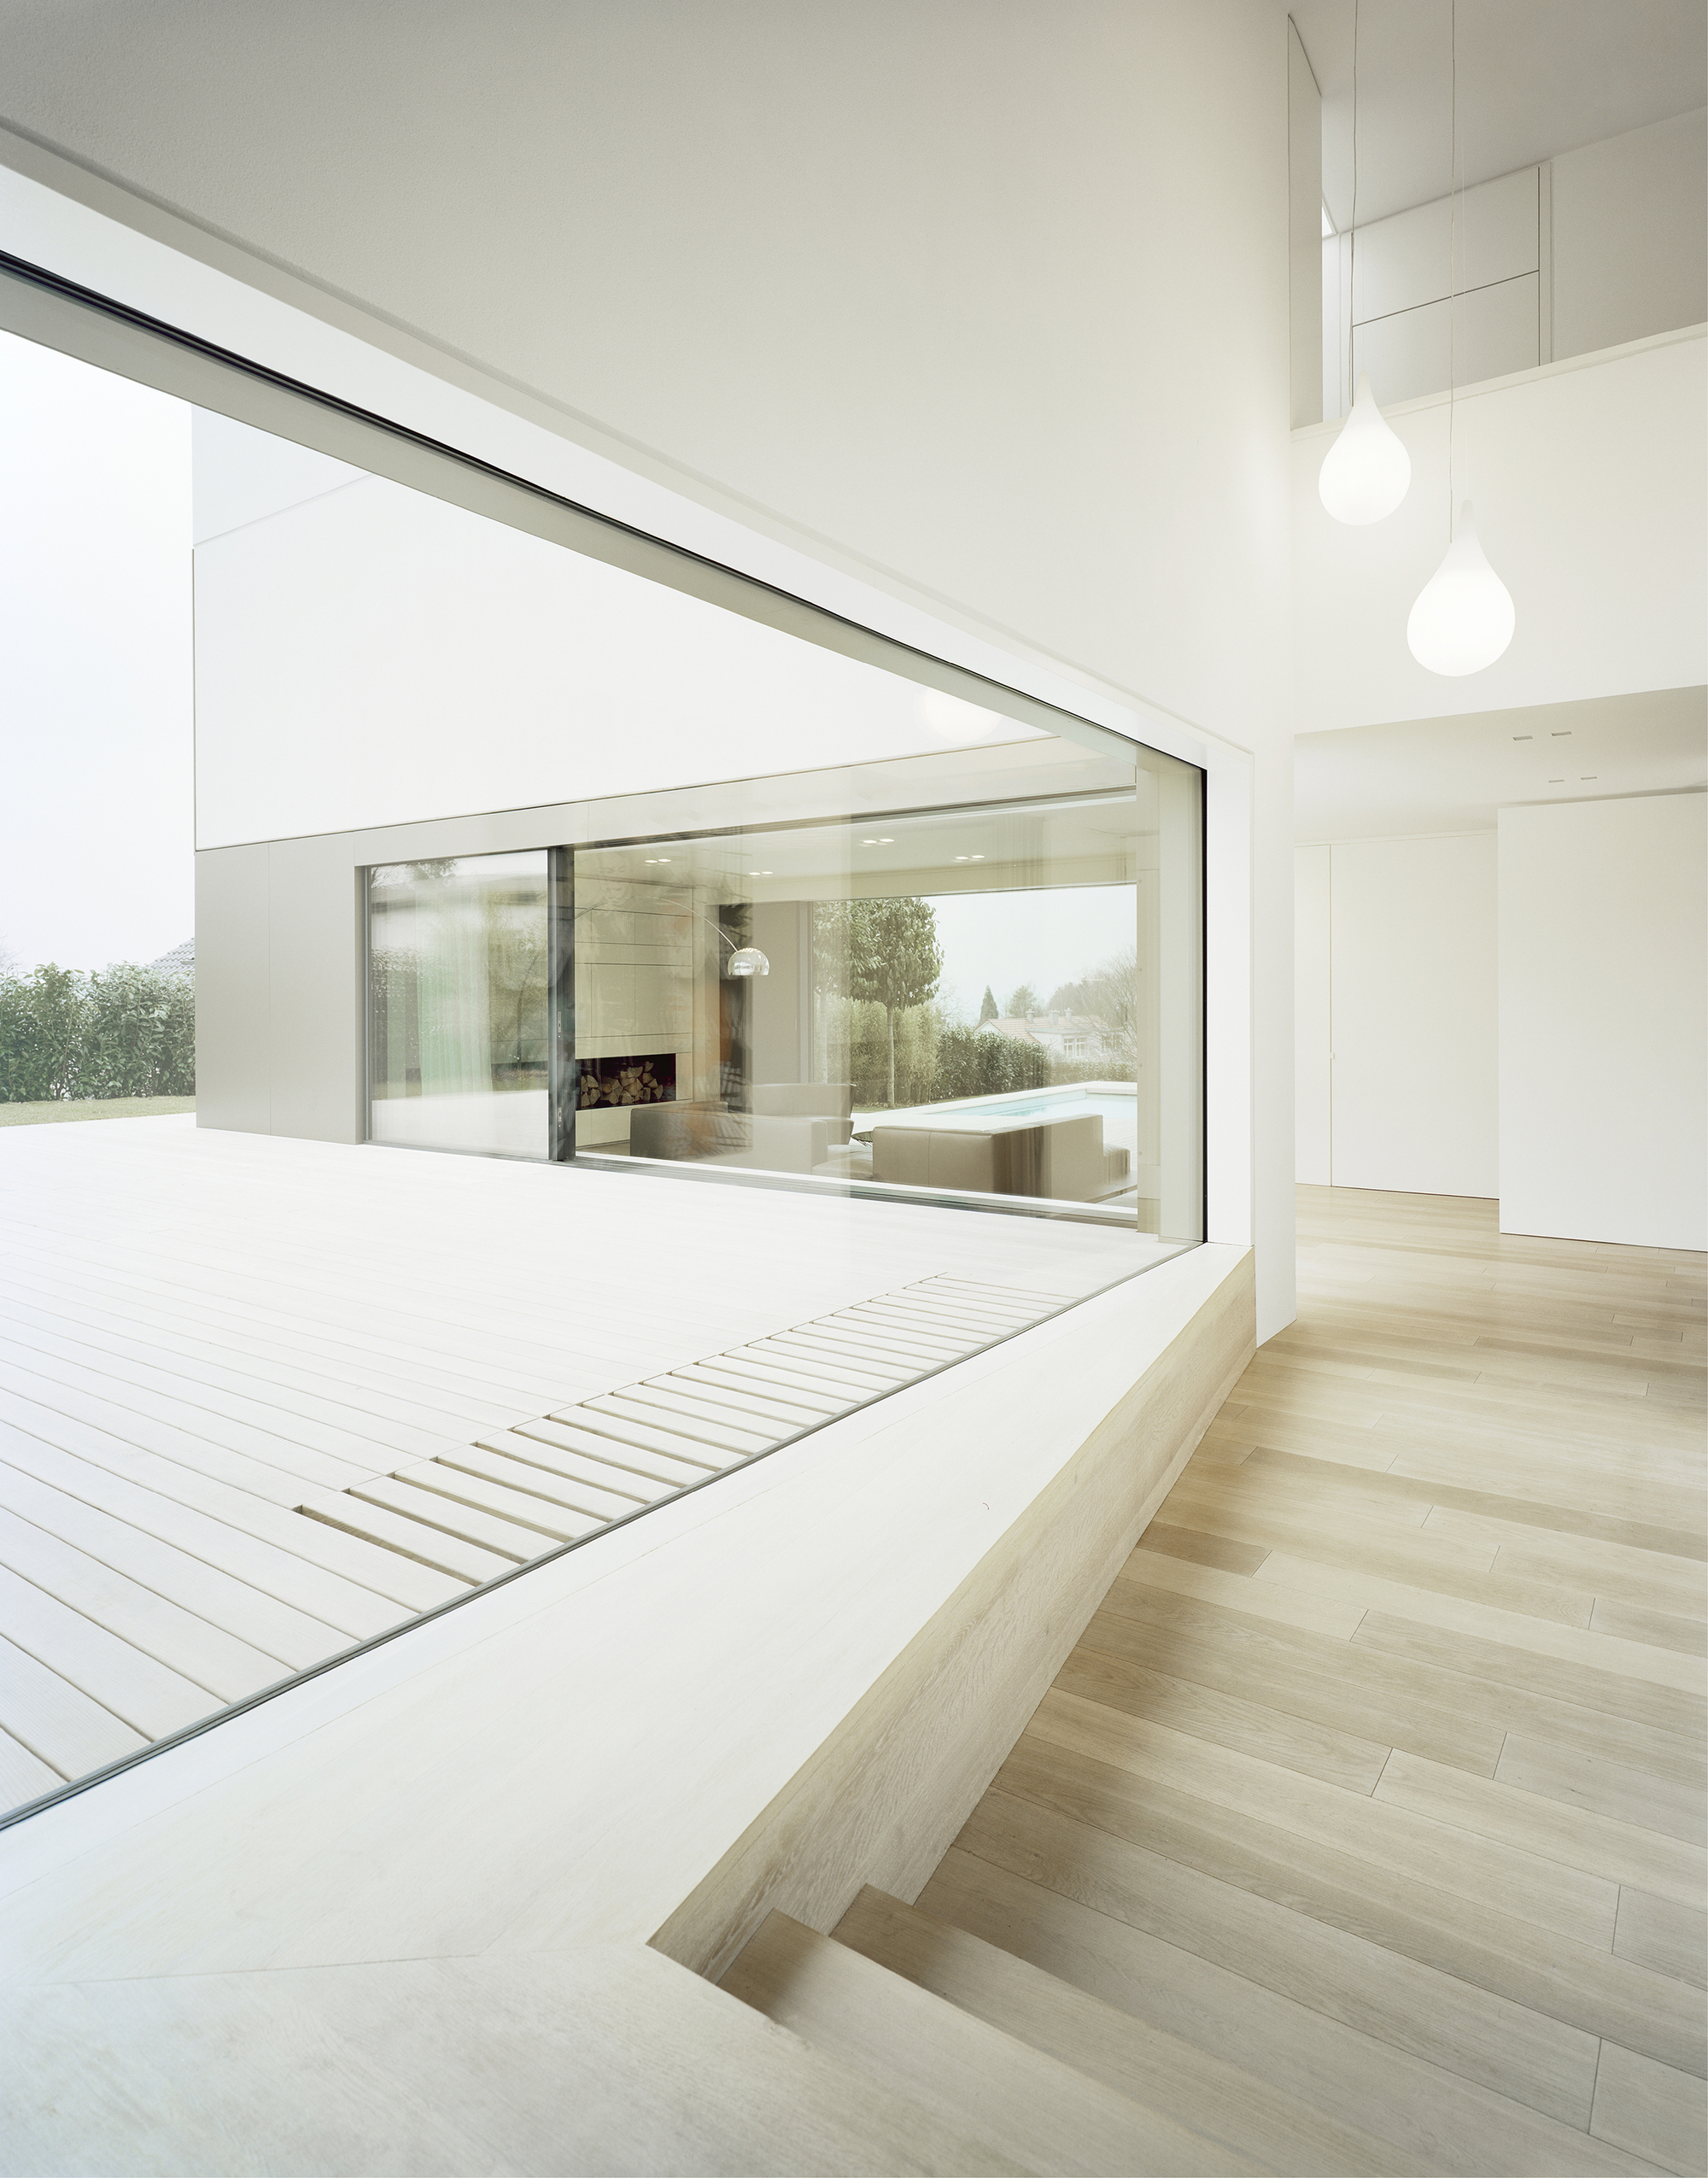 city villa s3 by steimle architekten 10 Villa S3 by Steimle Architekten